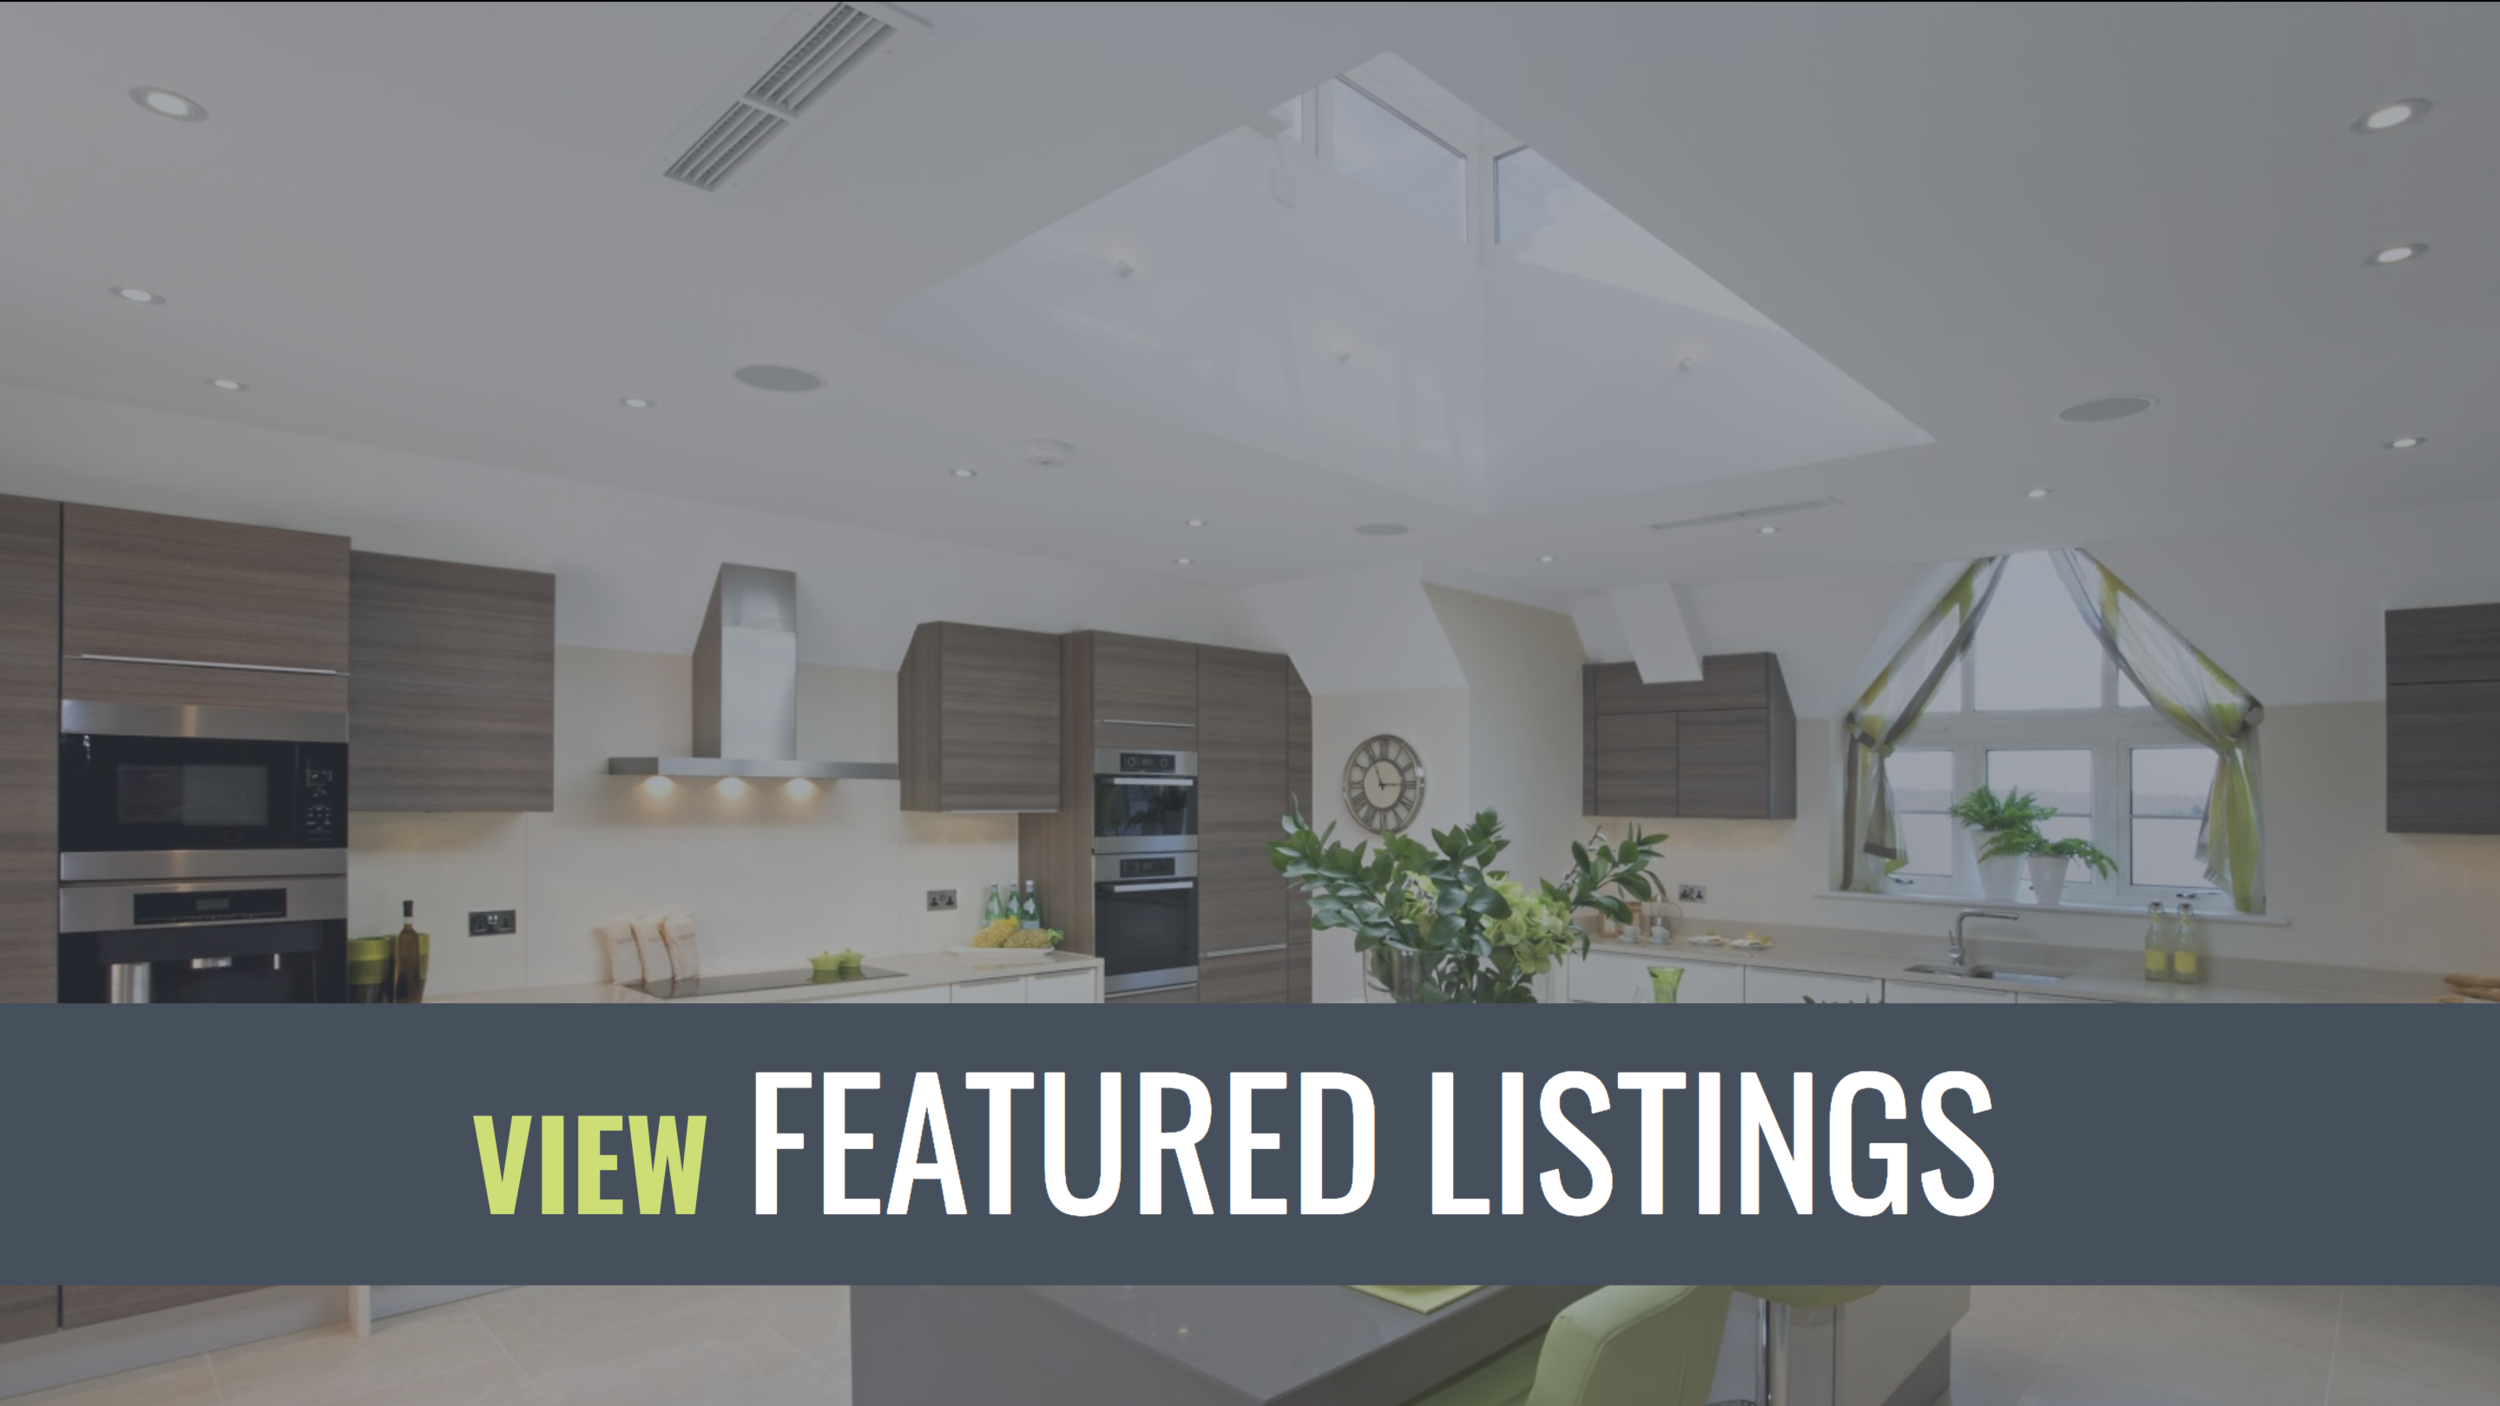 View Featured Listings: Lethbridge Homes For Sale